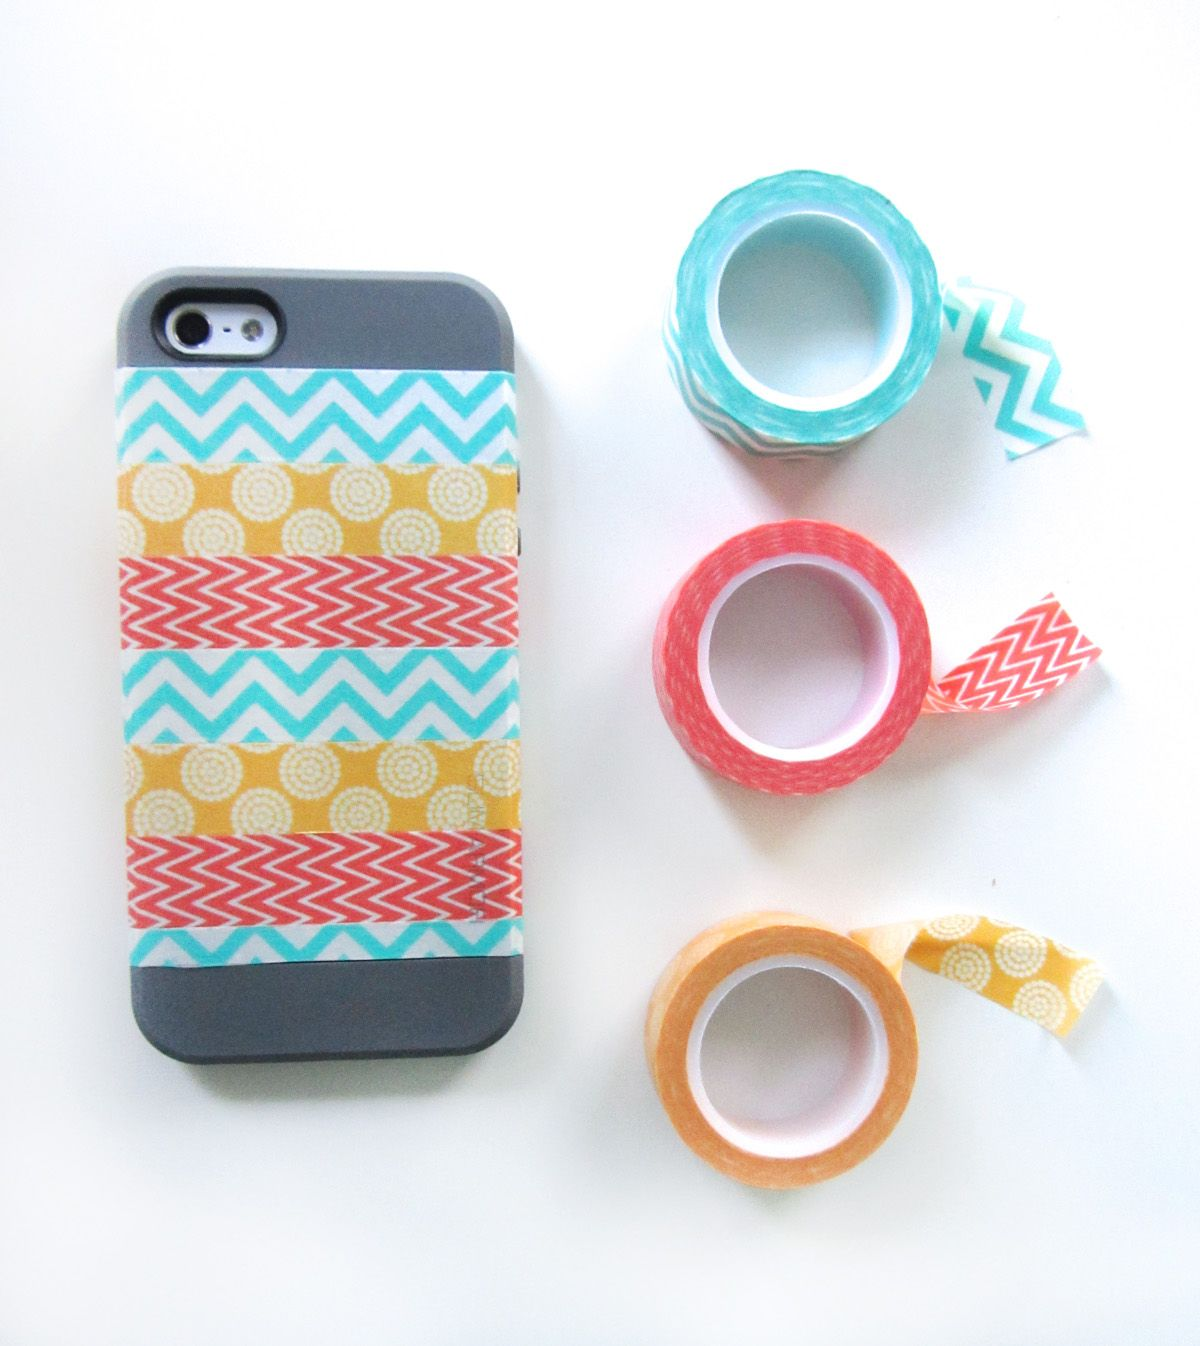 Phone Book Cover Diy : Diy phone cases ideas that make your cooler